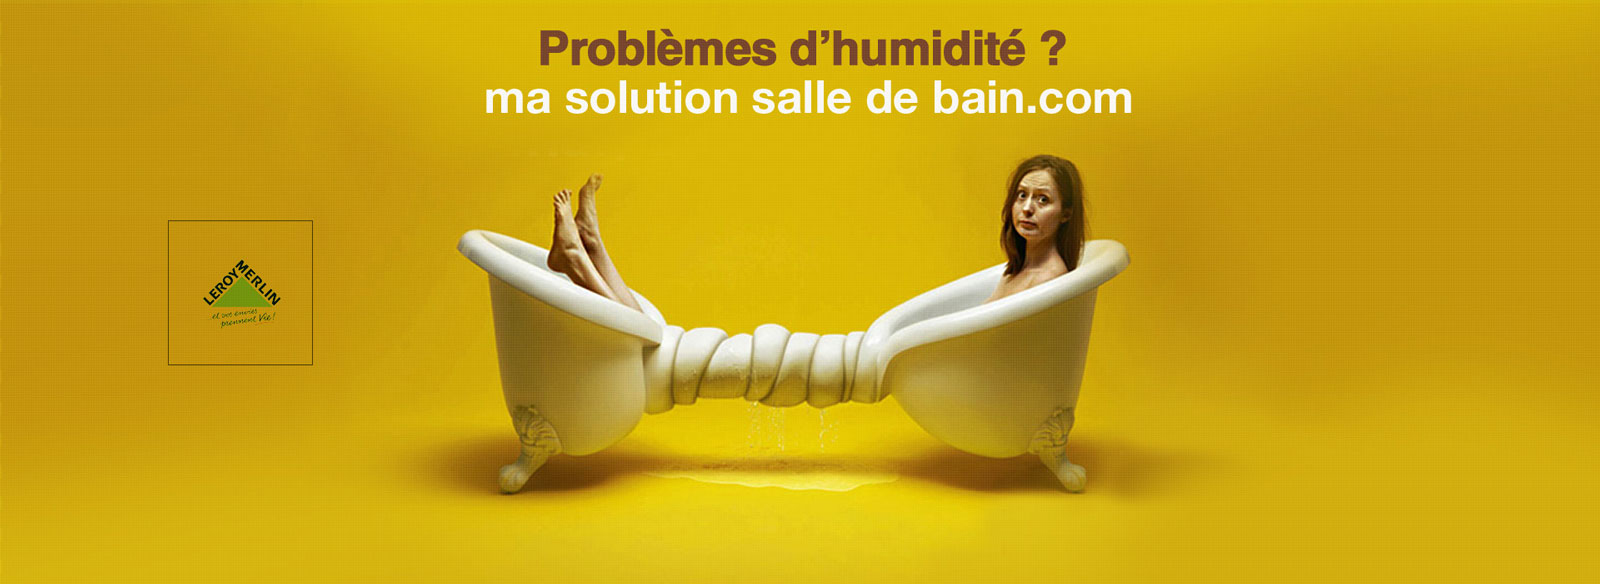 Leroy Merlin - ma solution salle de bain.com